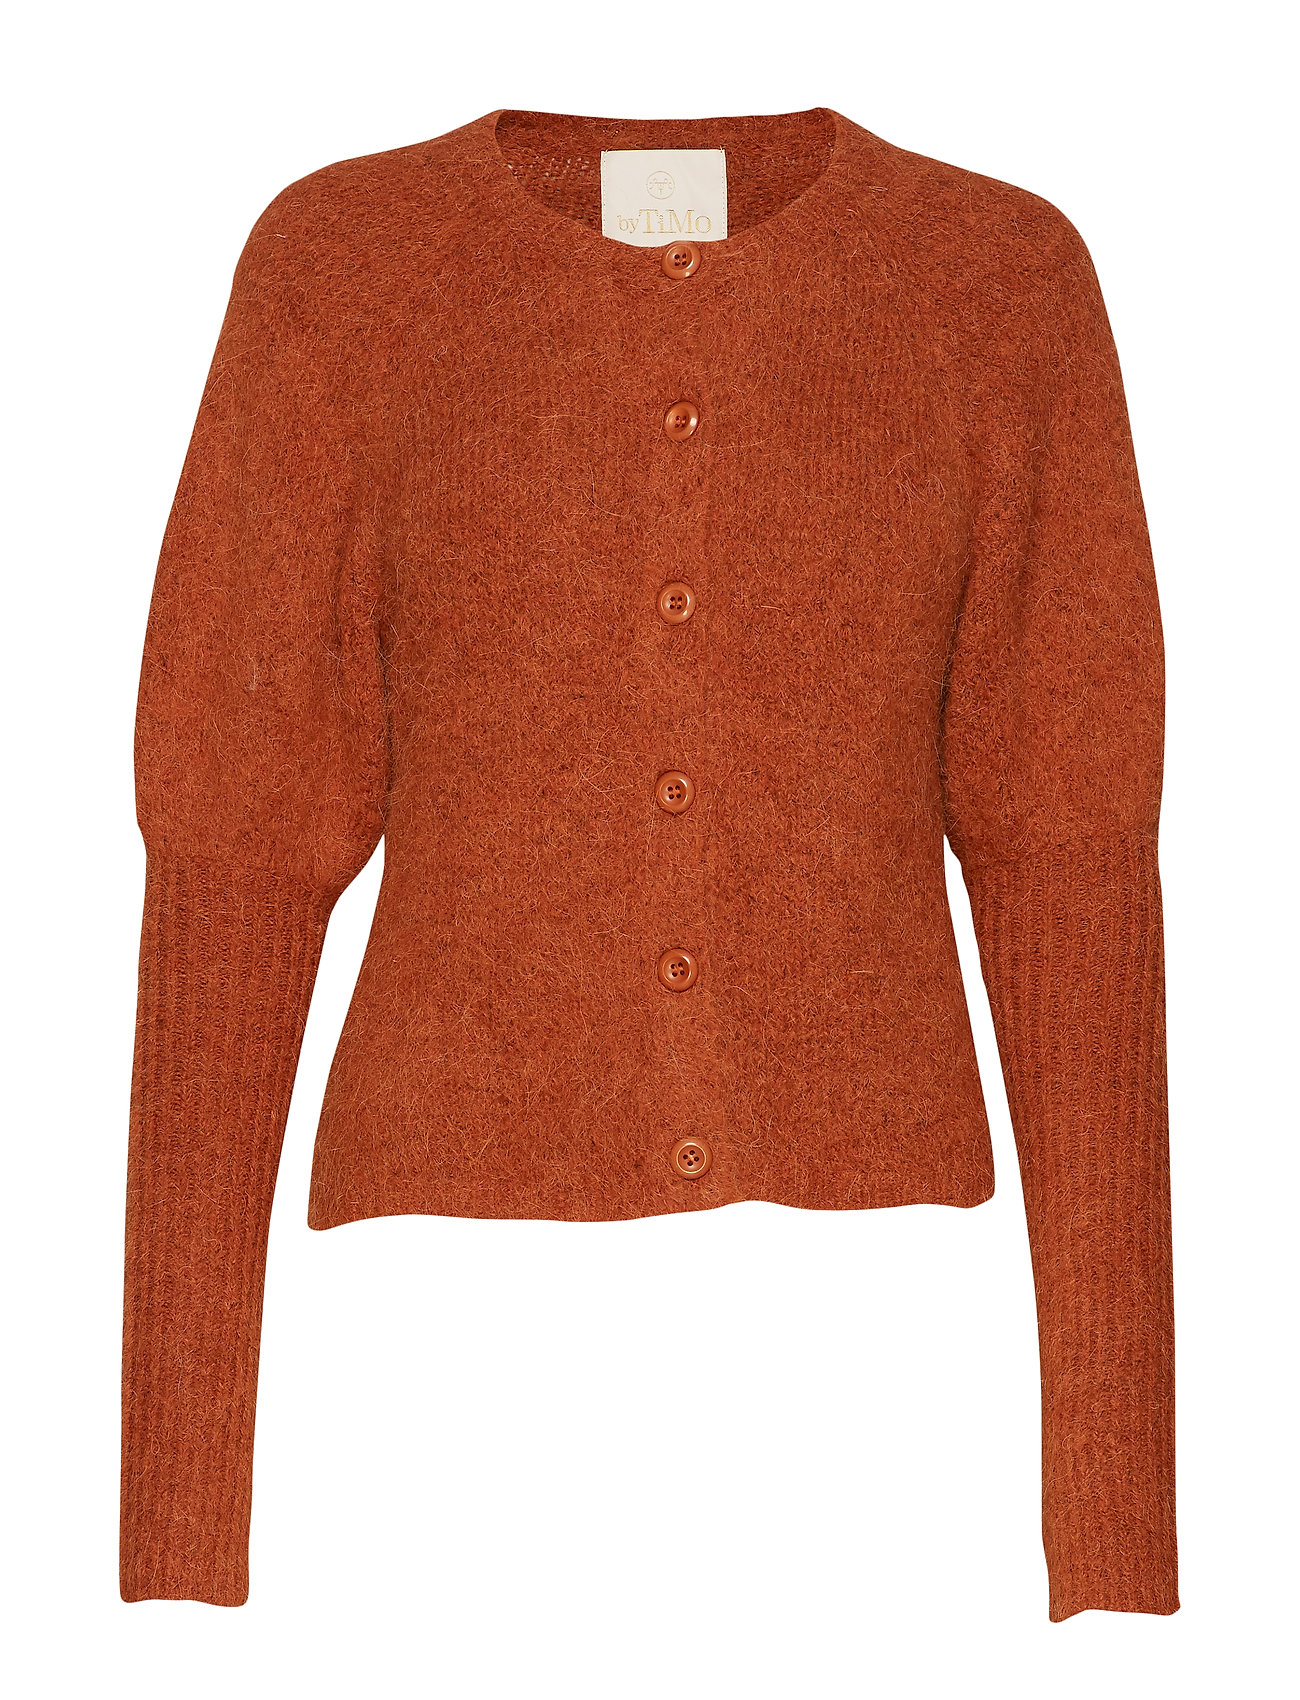 by Ti Mo Hairy Knit Puffed Cardigan - RUST